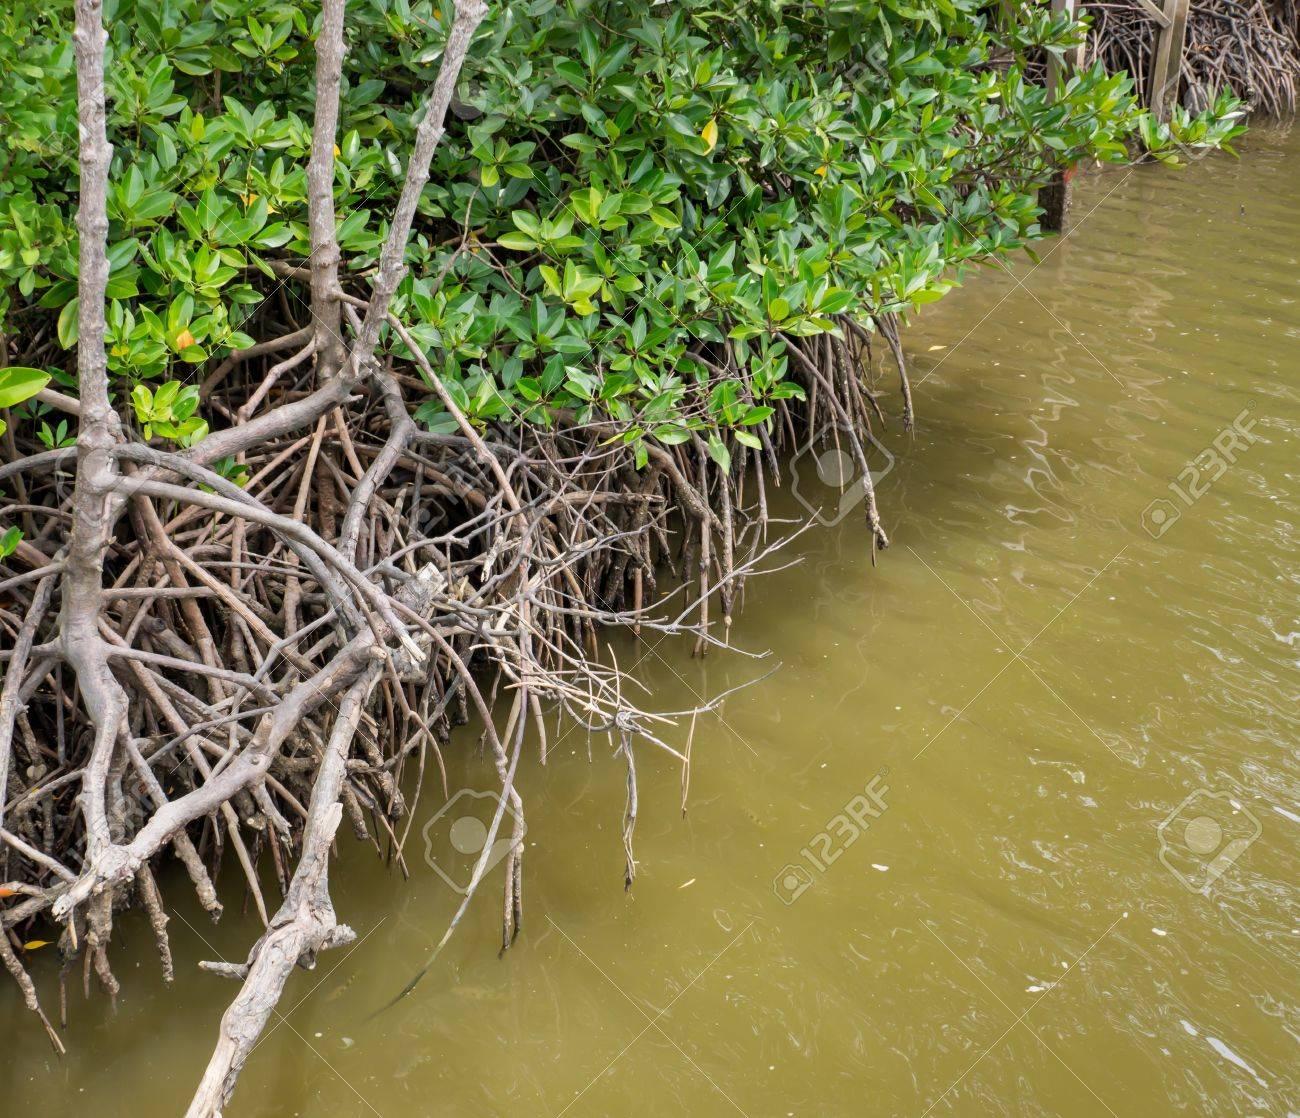 the mangrove root in water is the food source of aquatic animals